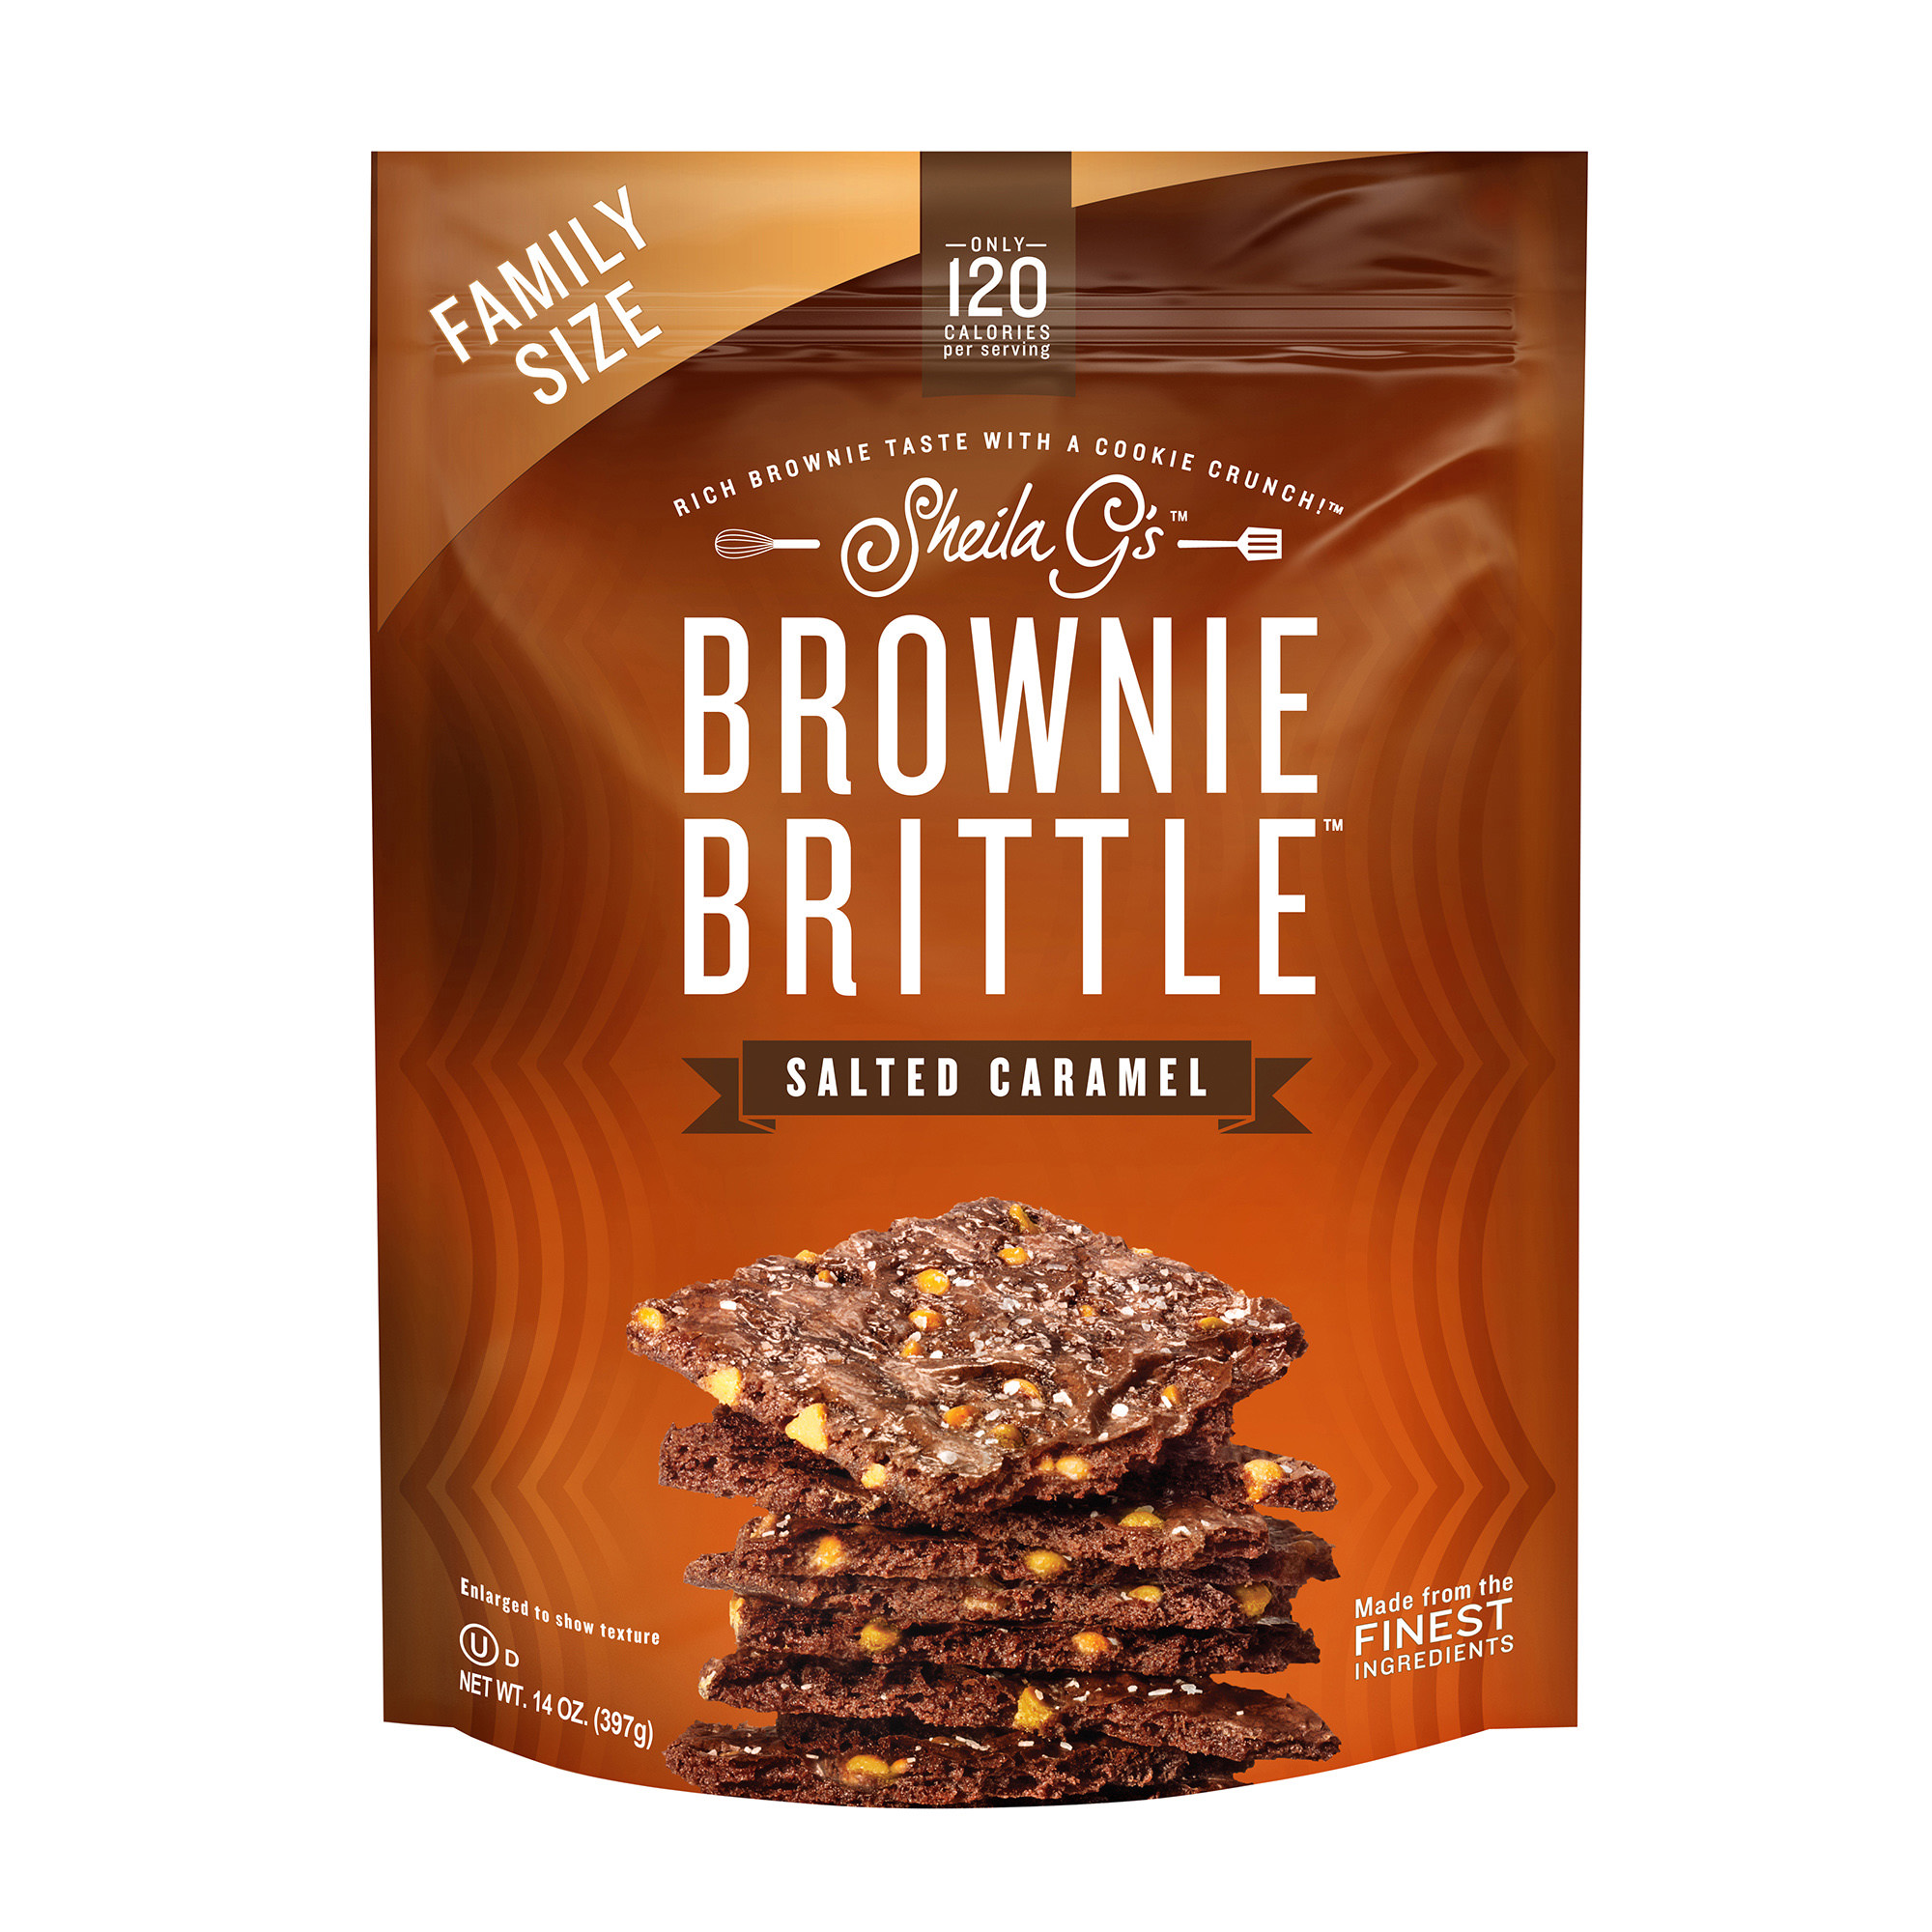 Sheila G's Brownie Brittle Salted Caramel Cookie Snack Thins, 14oz